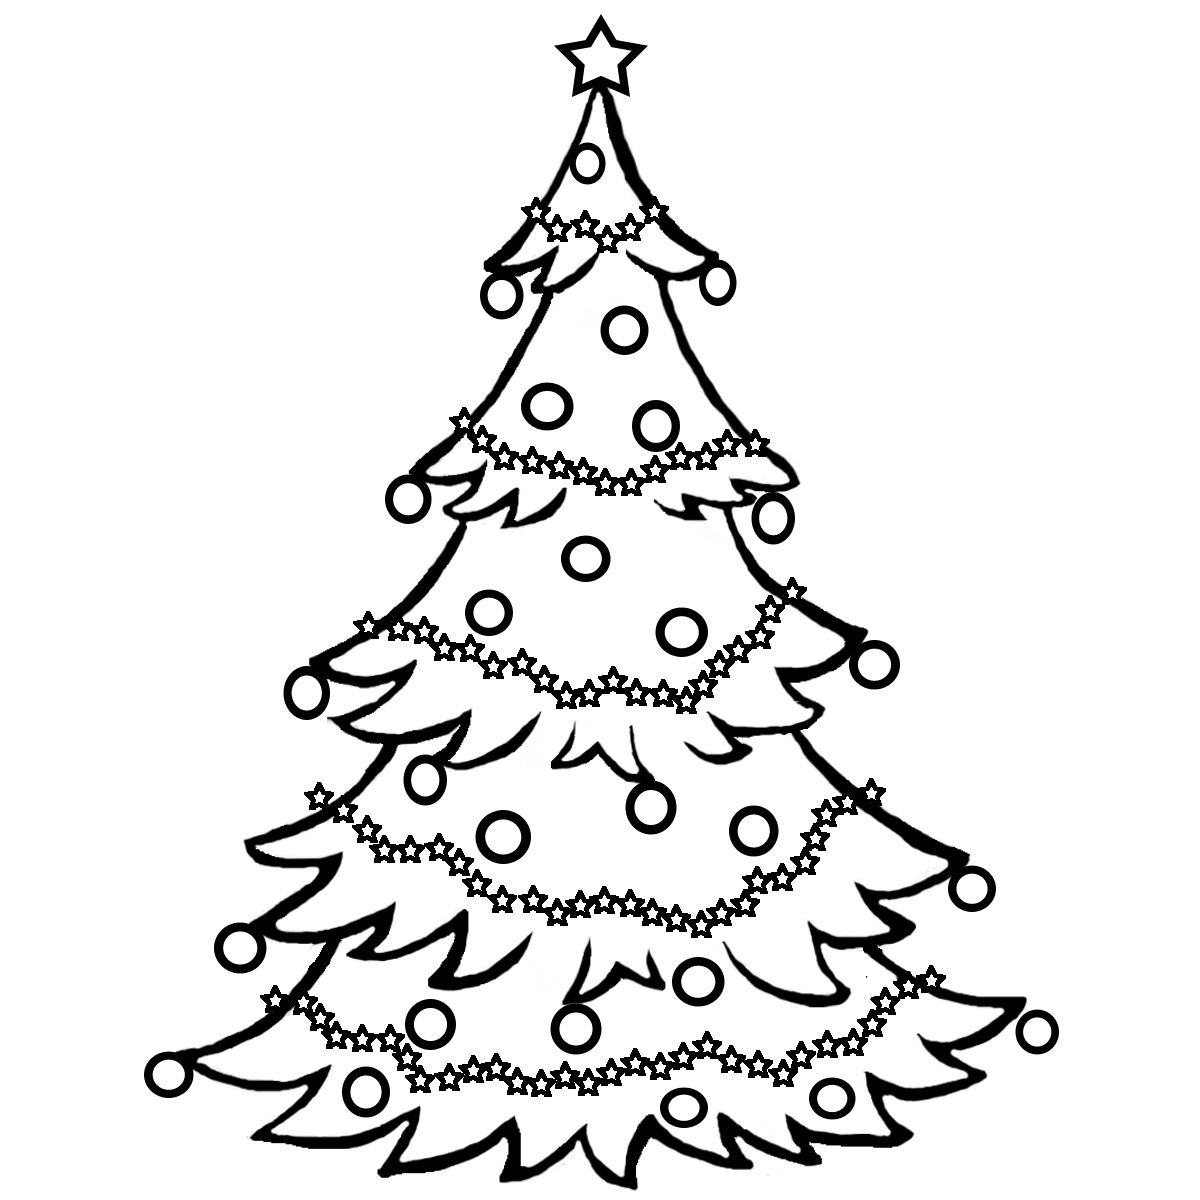 Christmas tree clipart color graphic royalty free Christmas Coloring Pages | Christmas Clip Art - Clip Art for ... graphic royalty free